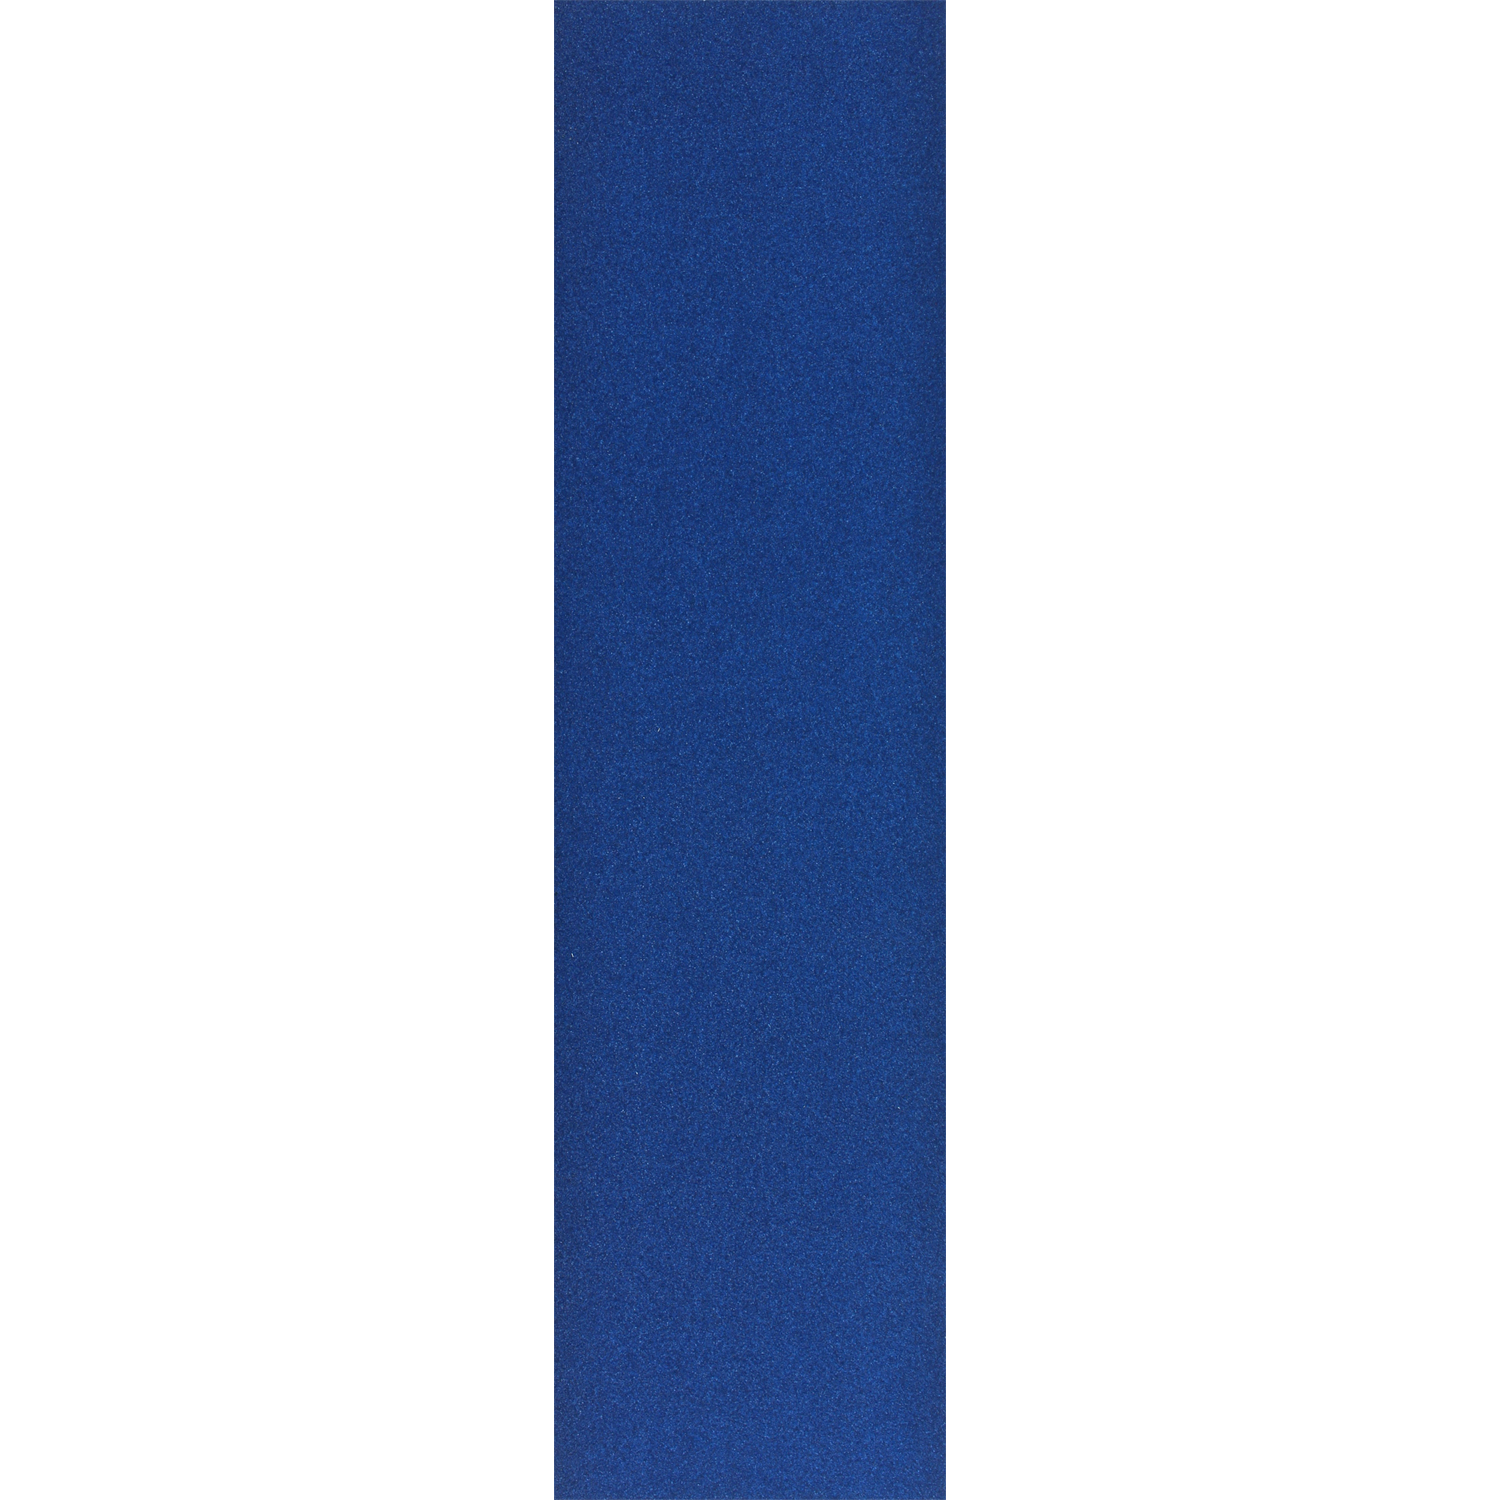 PIMP GRIP SINGLE SHEET-MIDNIGHT BLUE